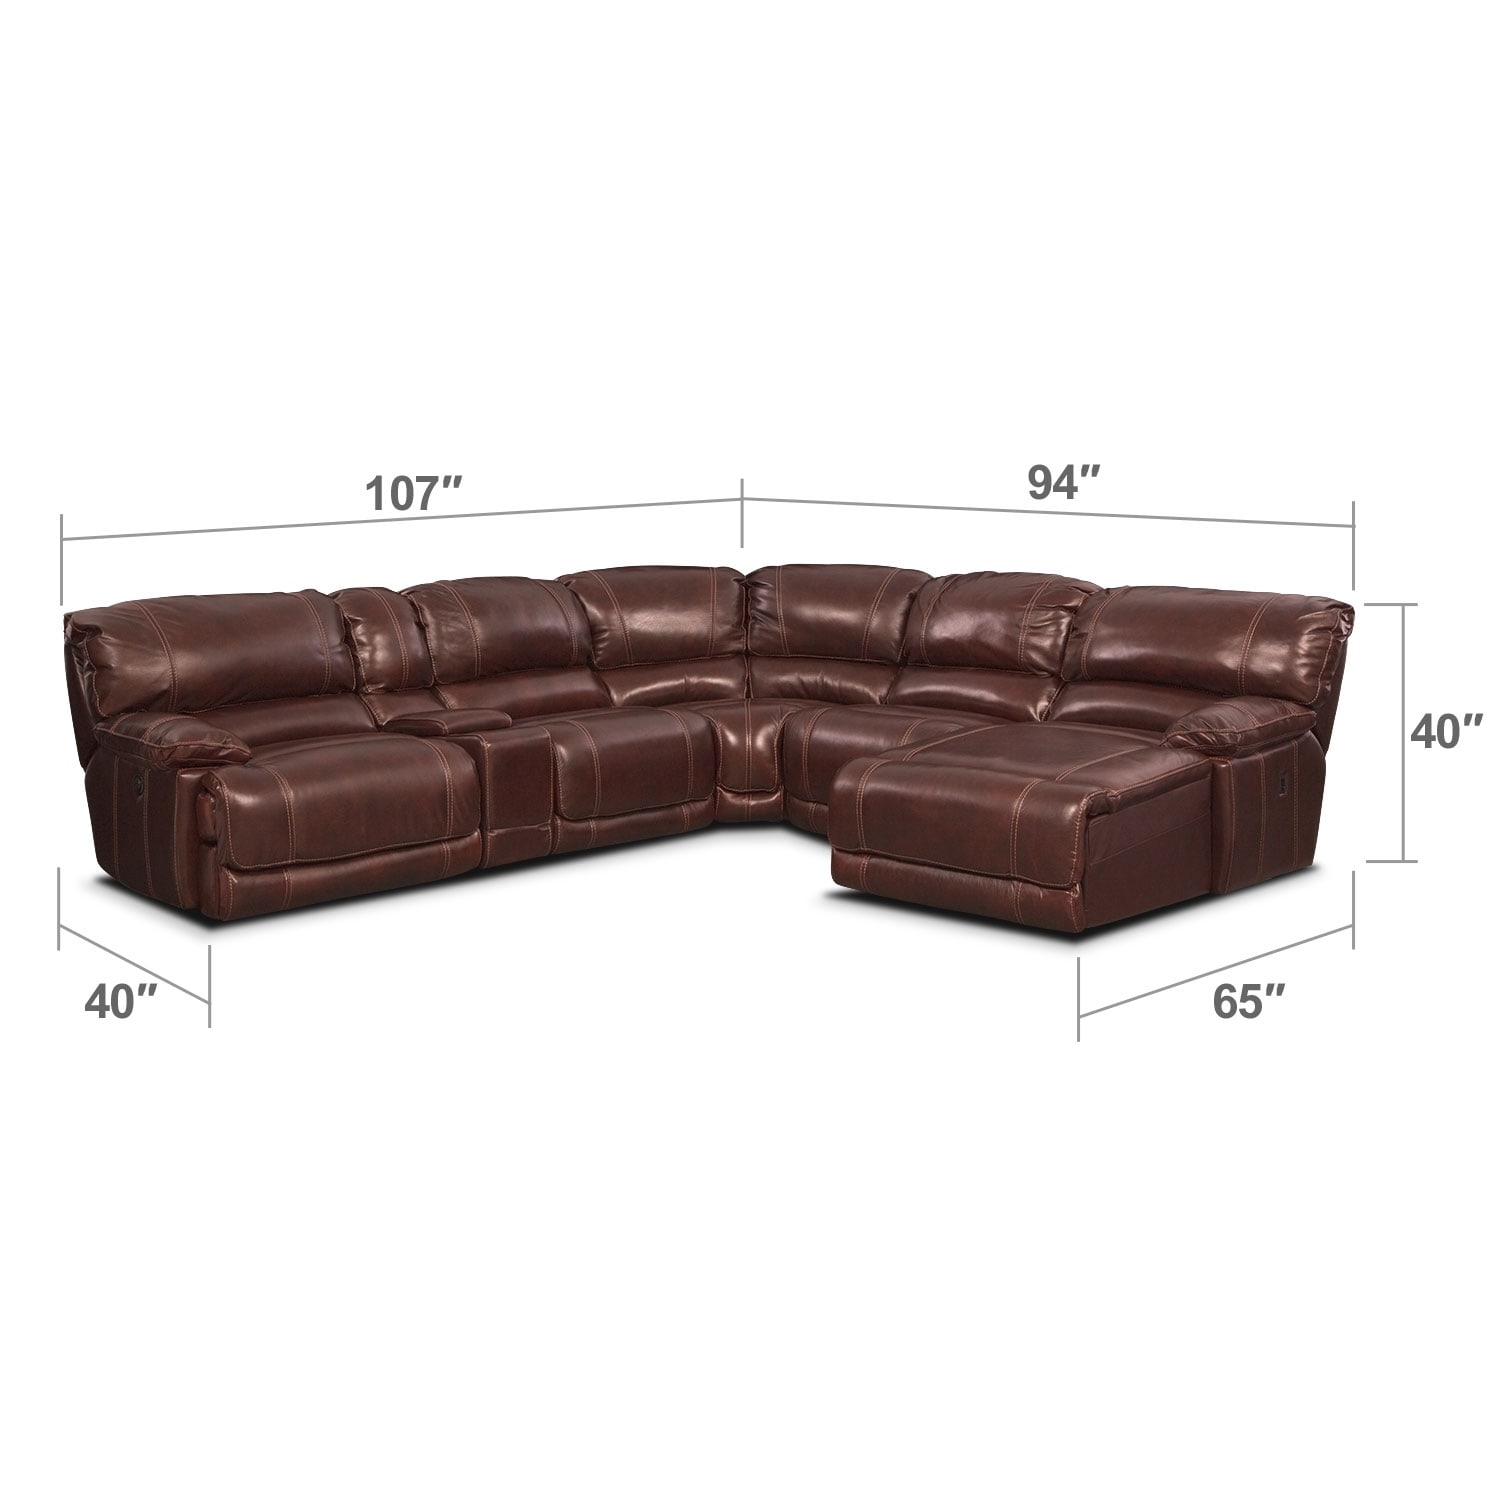 Living Room Furniture - Clinton Burgundy 6 Pc. Power Reclining Sectional